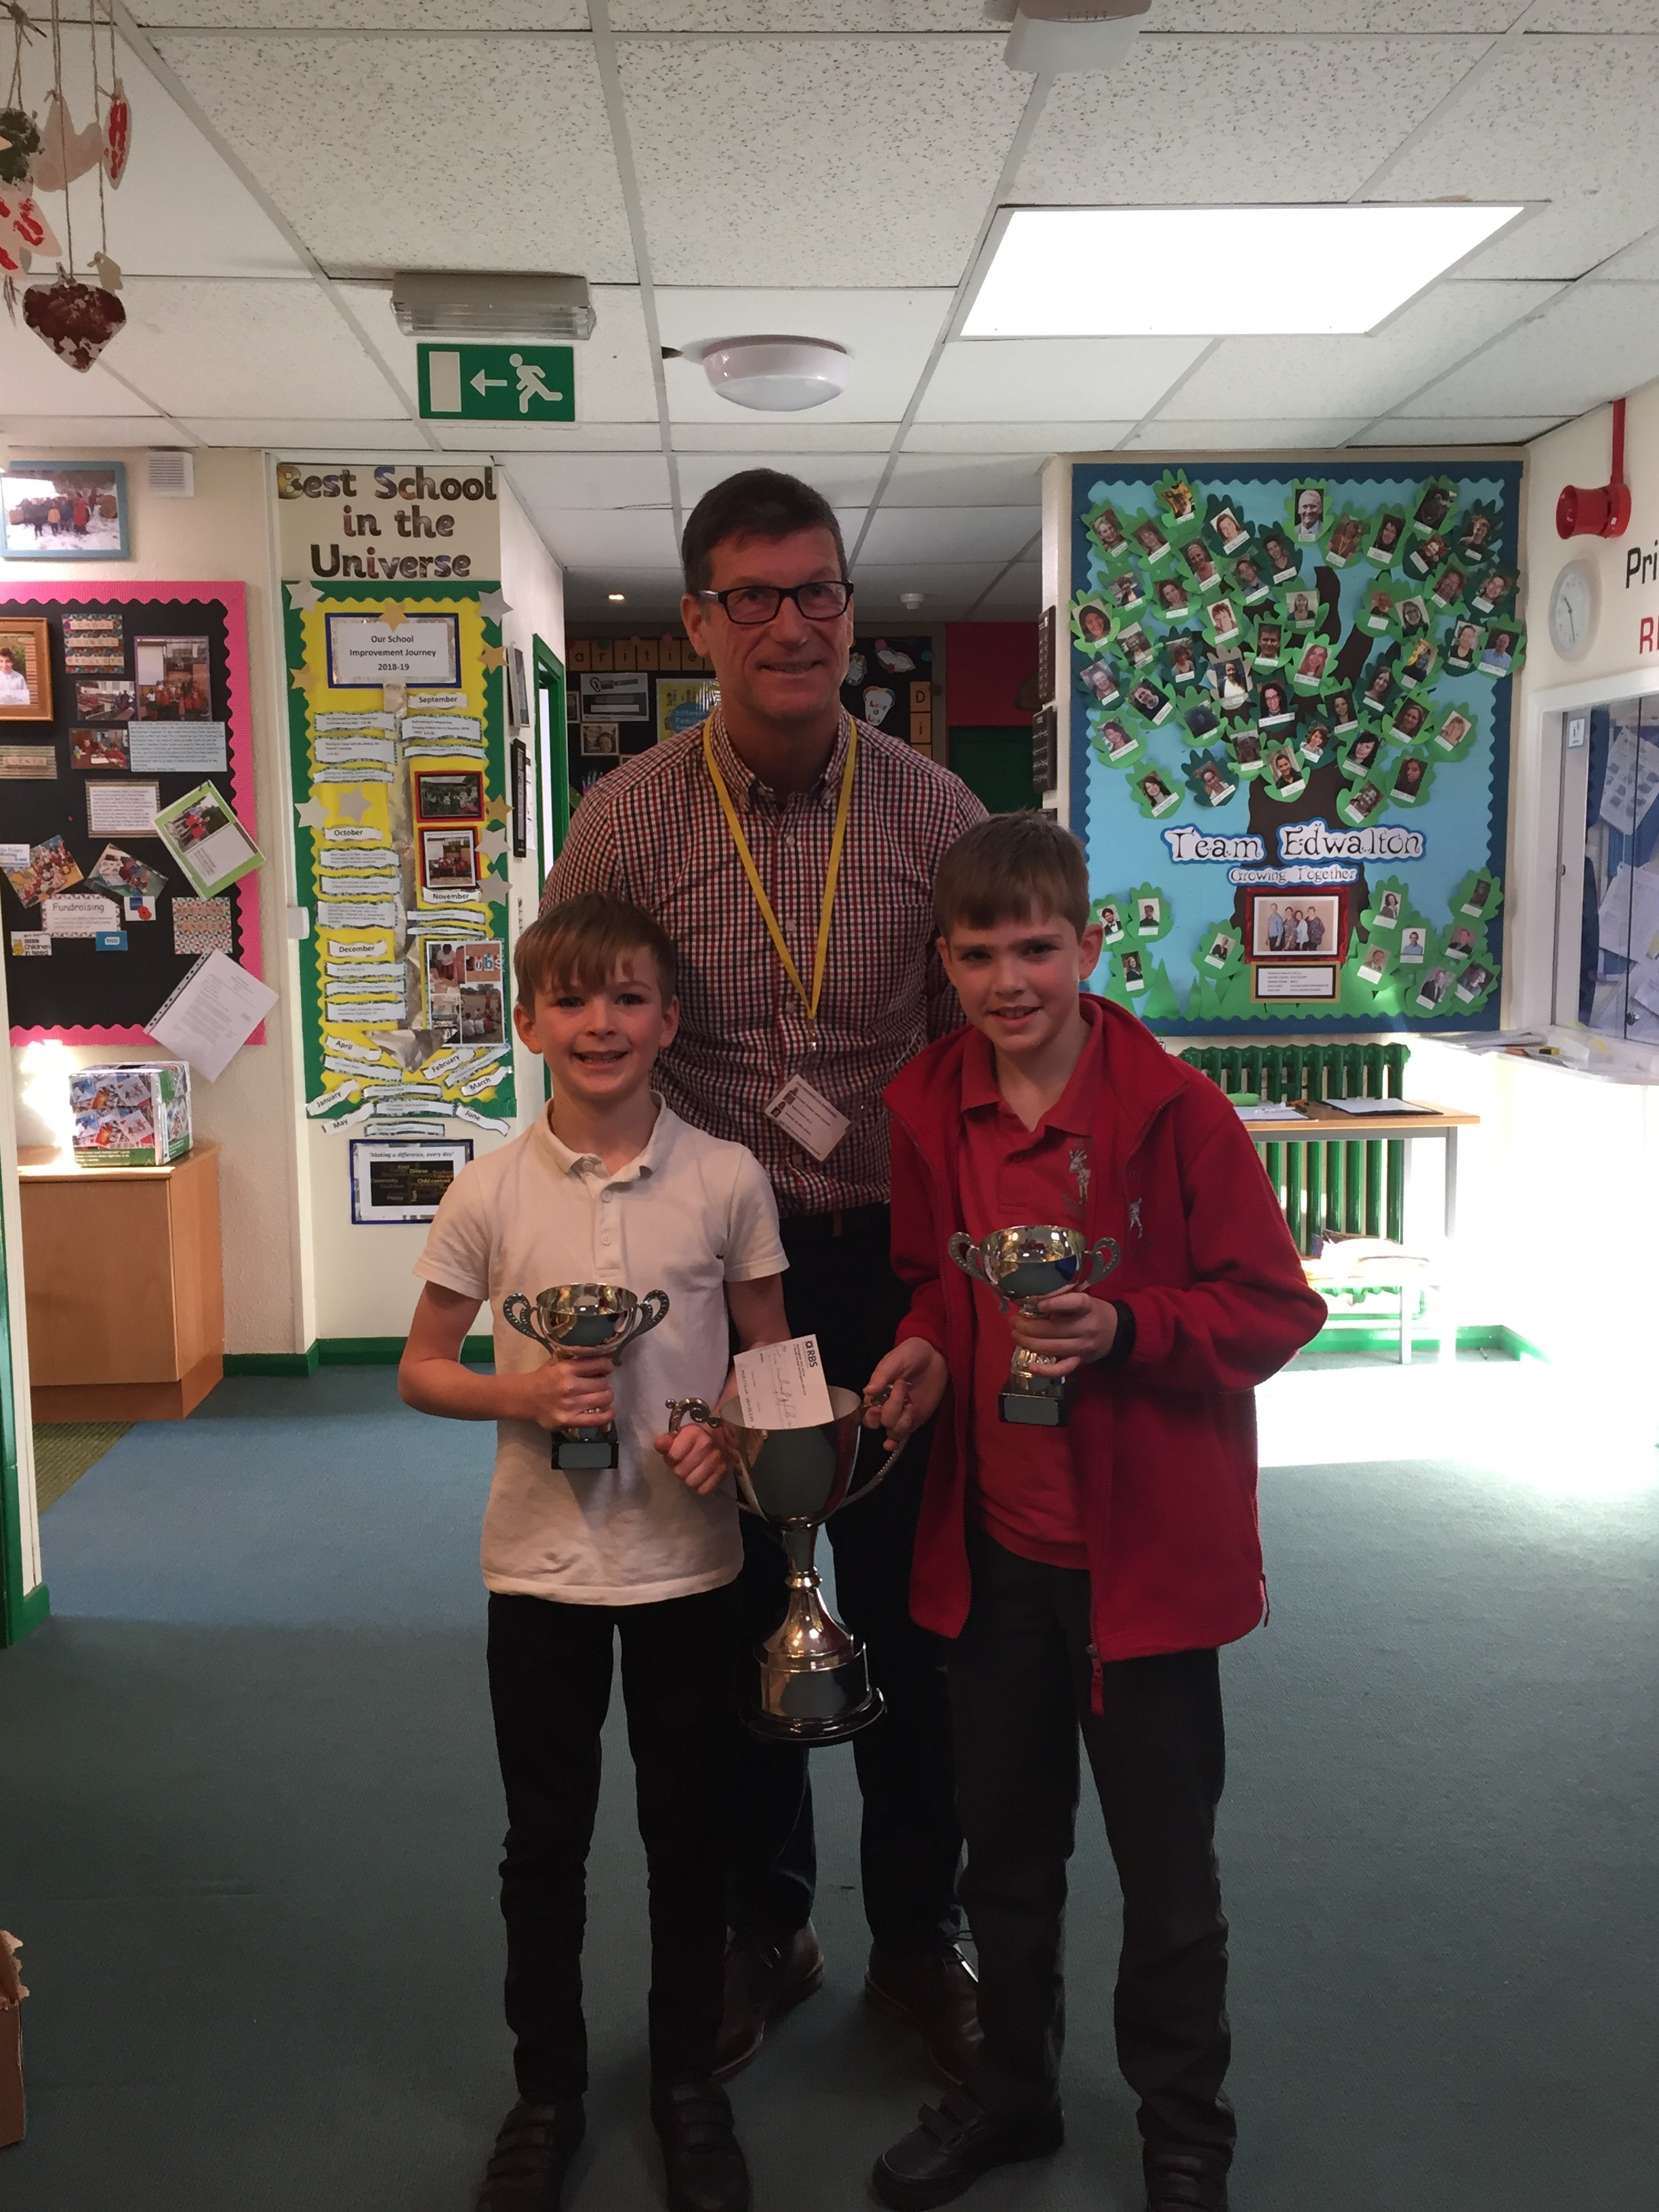 Royston & Lund Sporting Achievement Award made at Edwalton Primary School